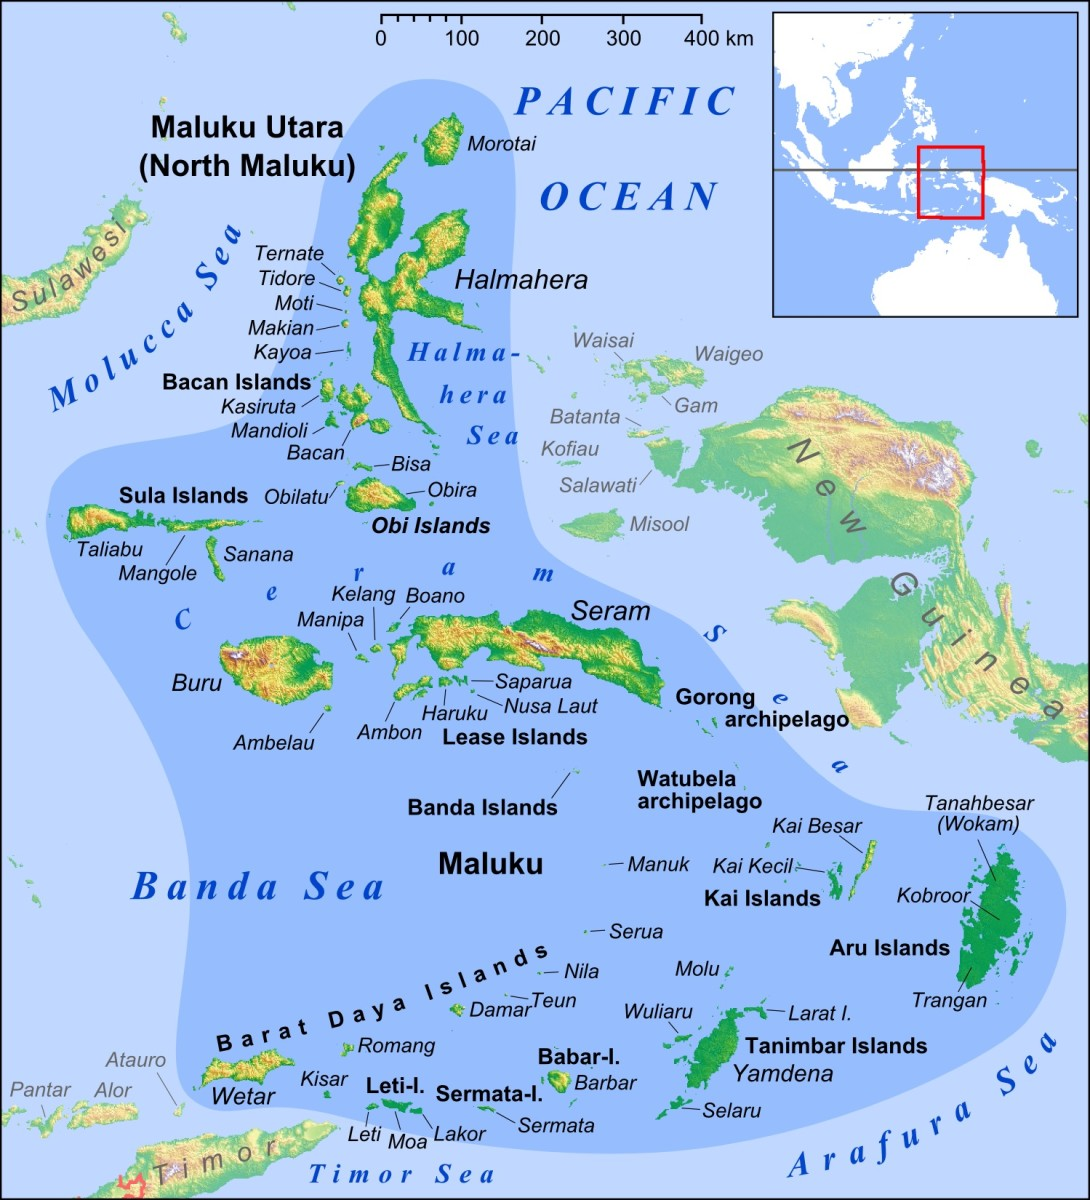 The clove tree is native to the Maluku Islands in Indonesia.